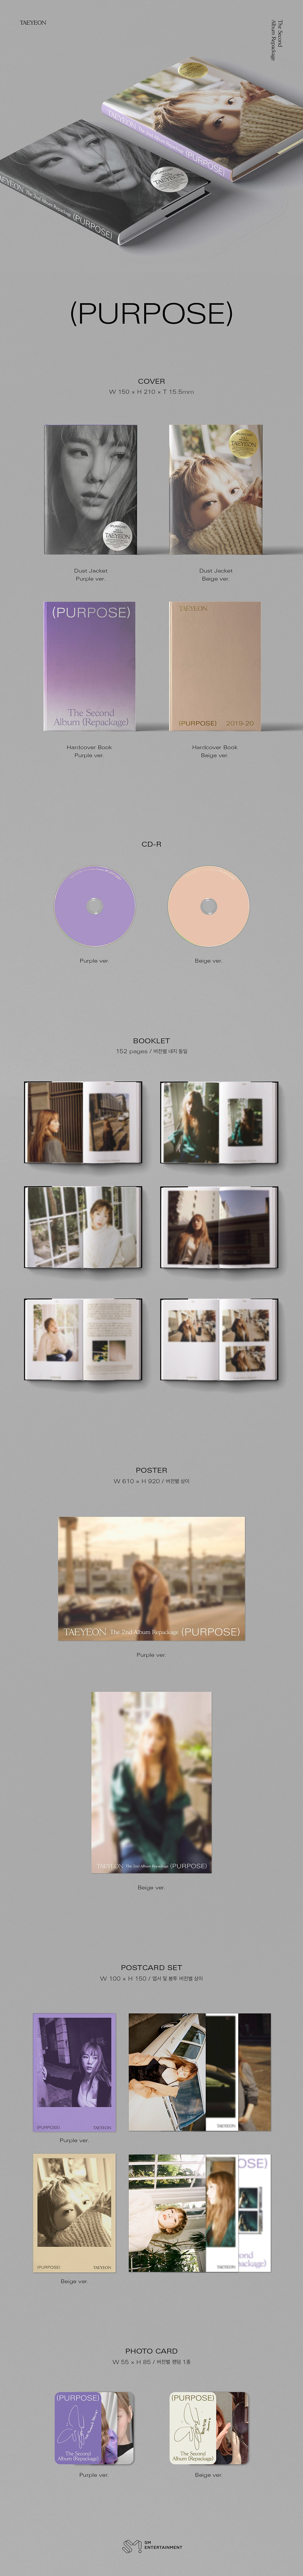 Image result for taeyeon repackage album